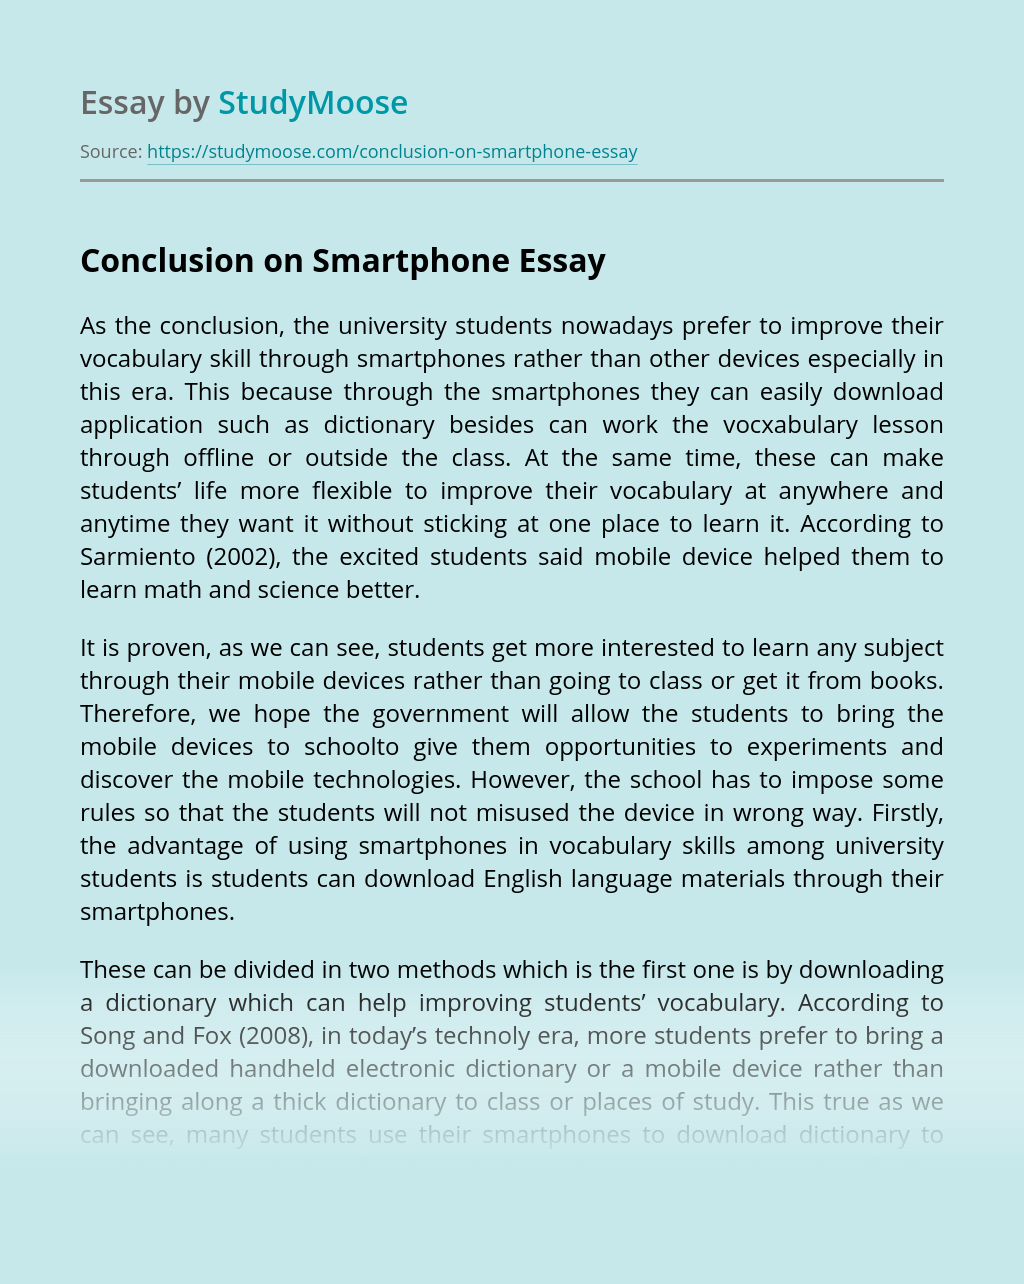 Conclusion on Smartphone